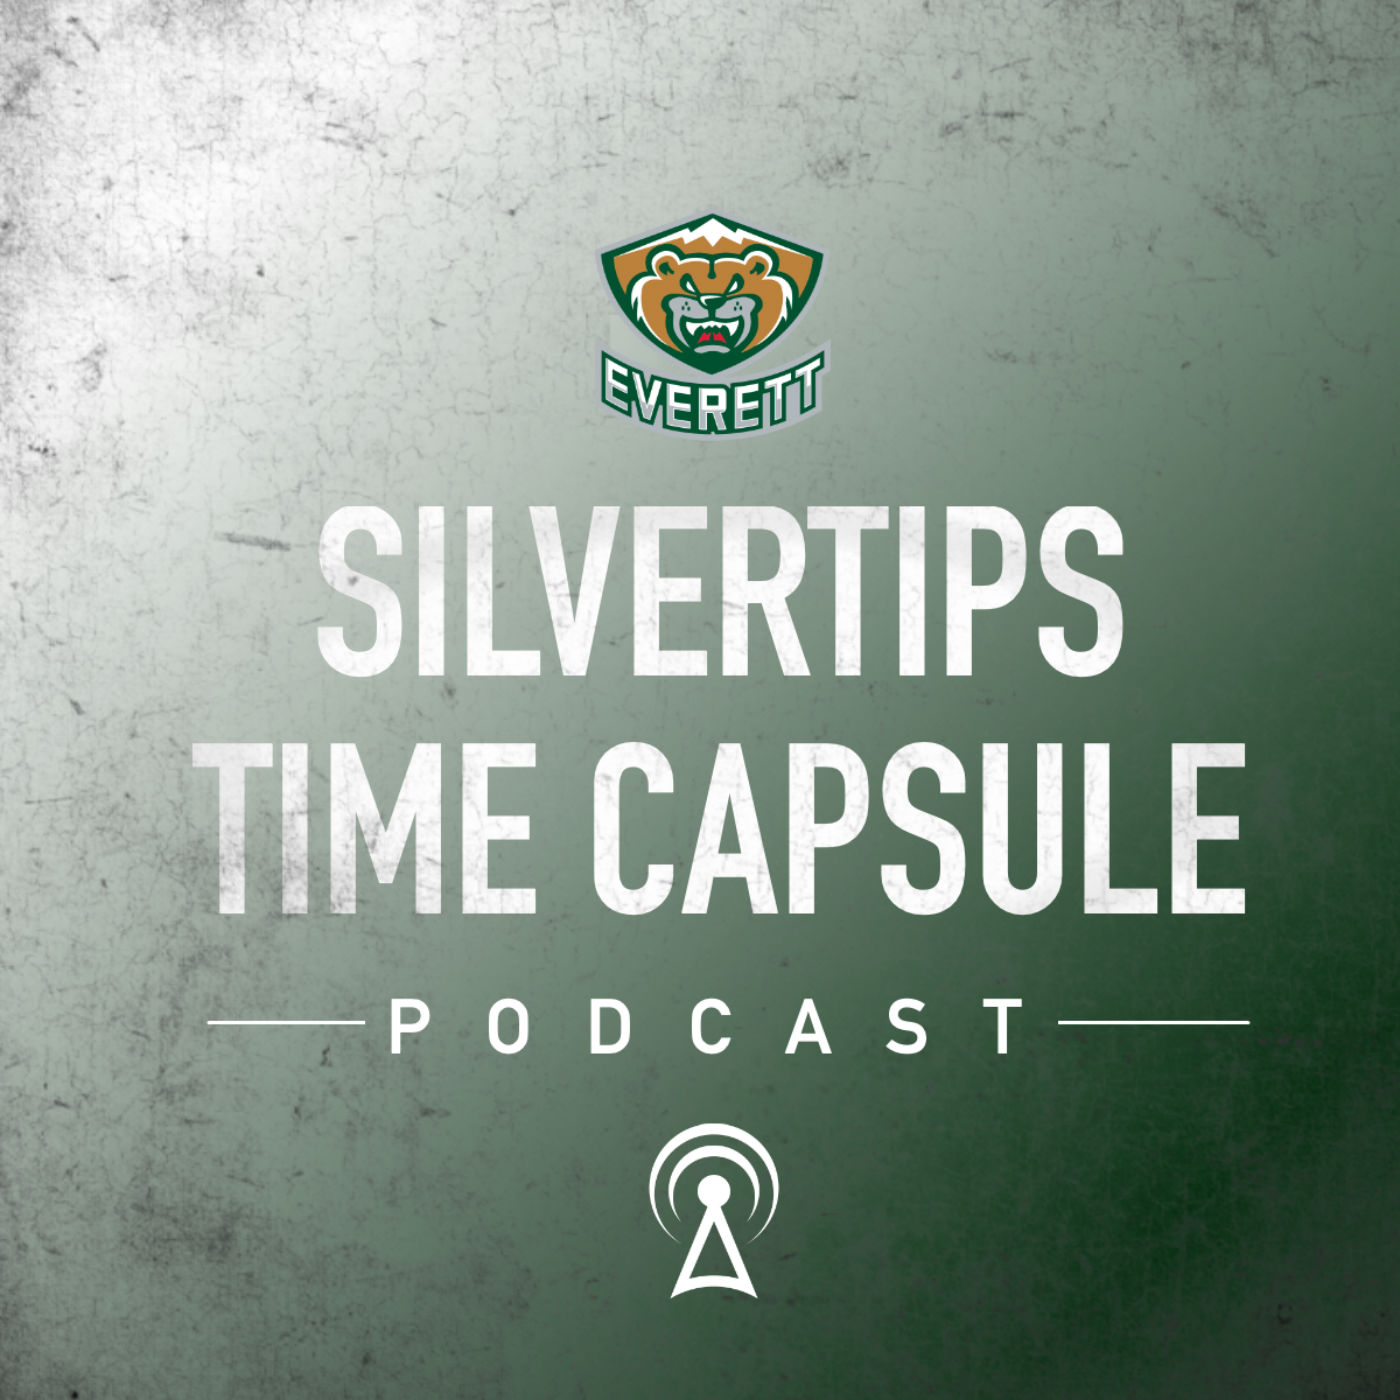 The Silvertips Time Capsule Podcast